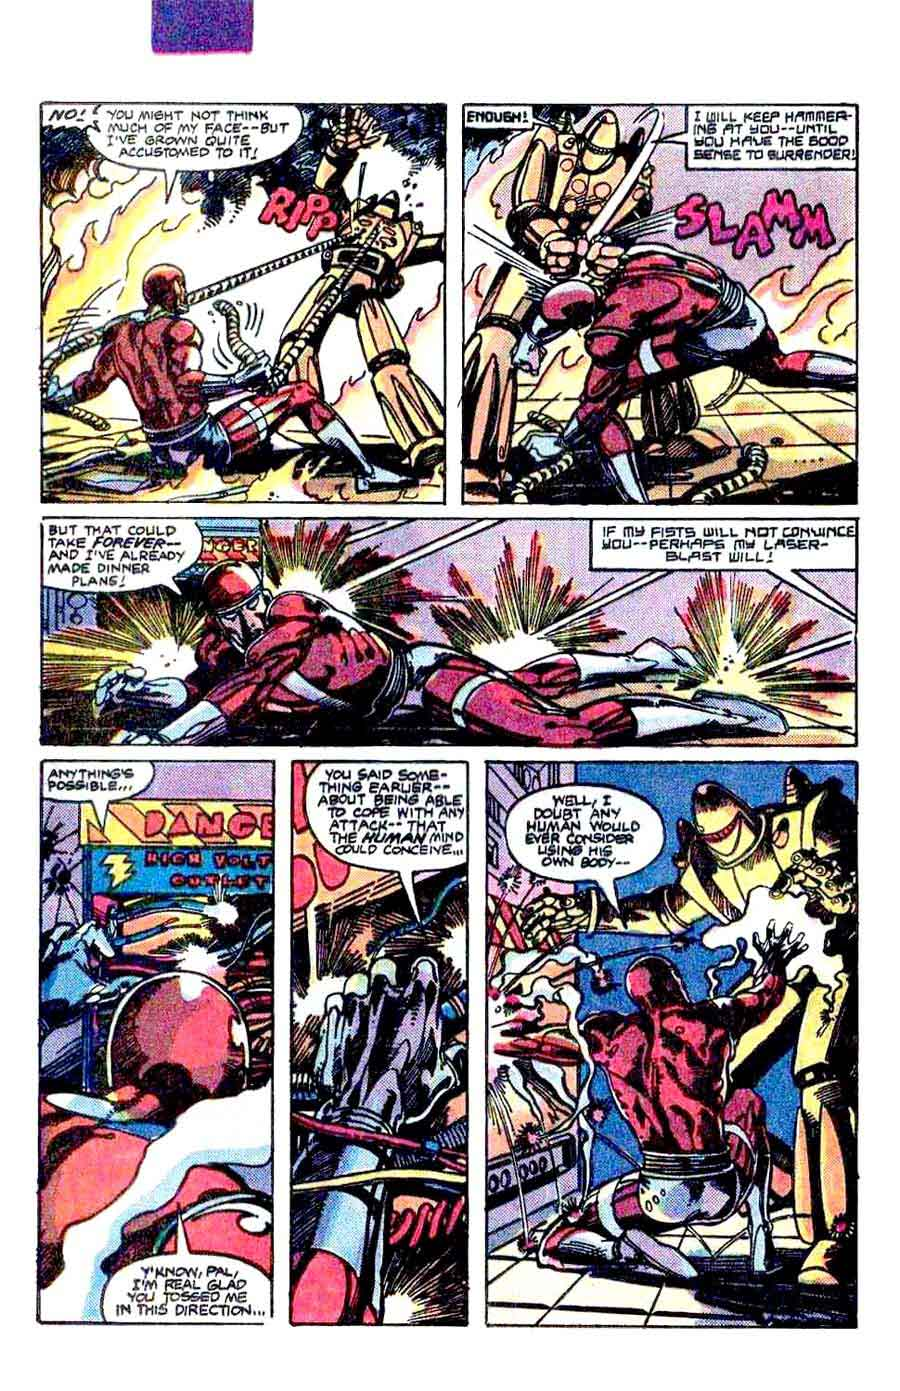 Machine Man v2 #1 marvel 1980s comic book page art by Barry Windsor Smith